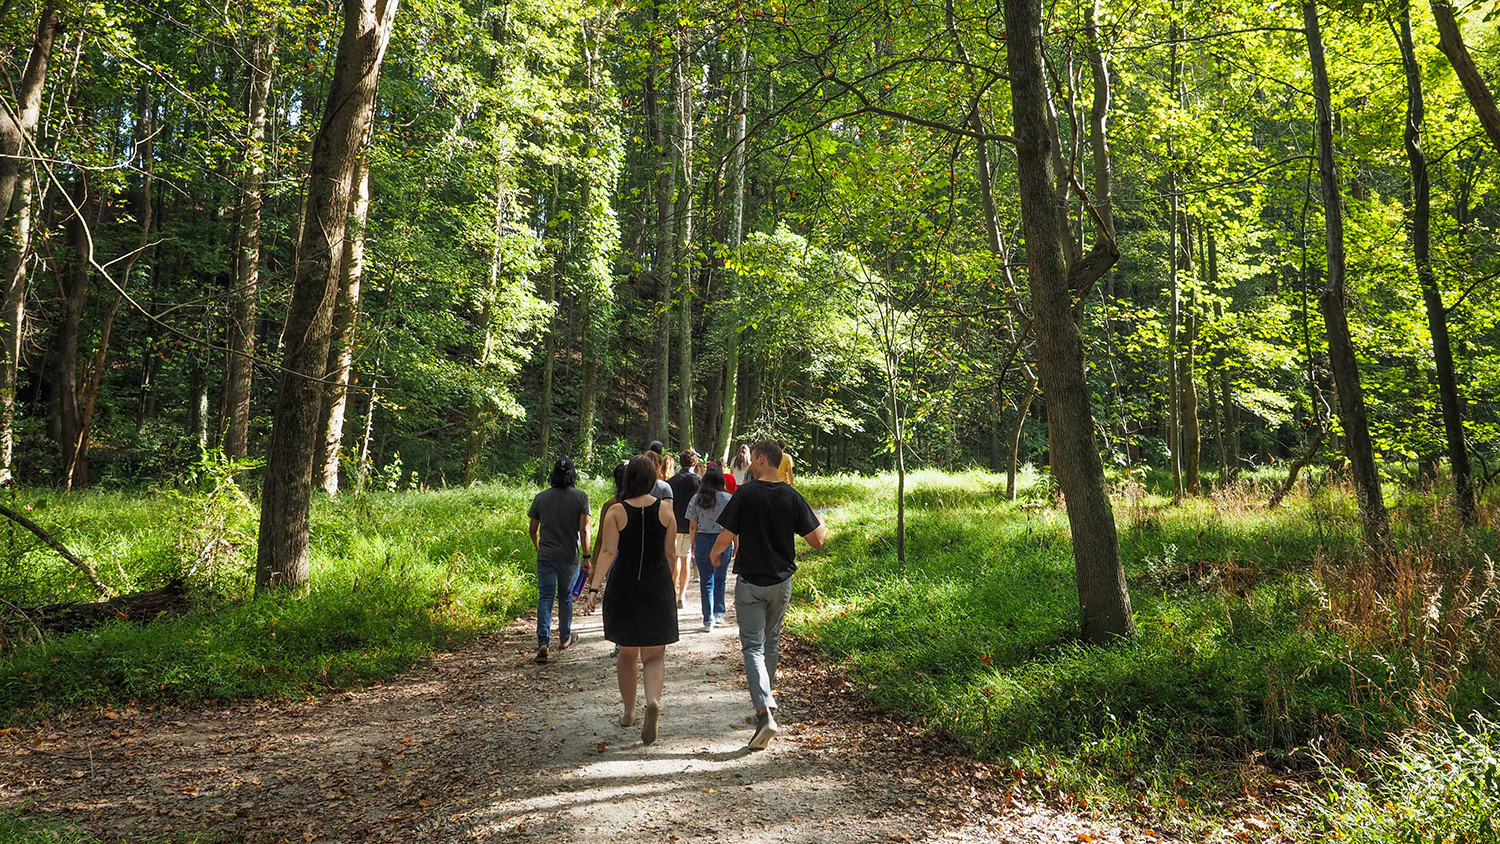 Decompress with gardening or a nature walk